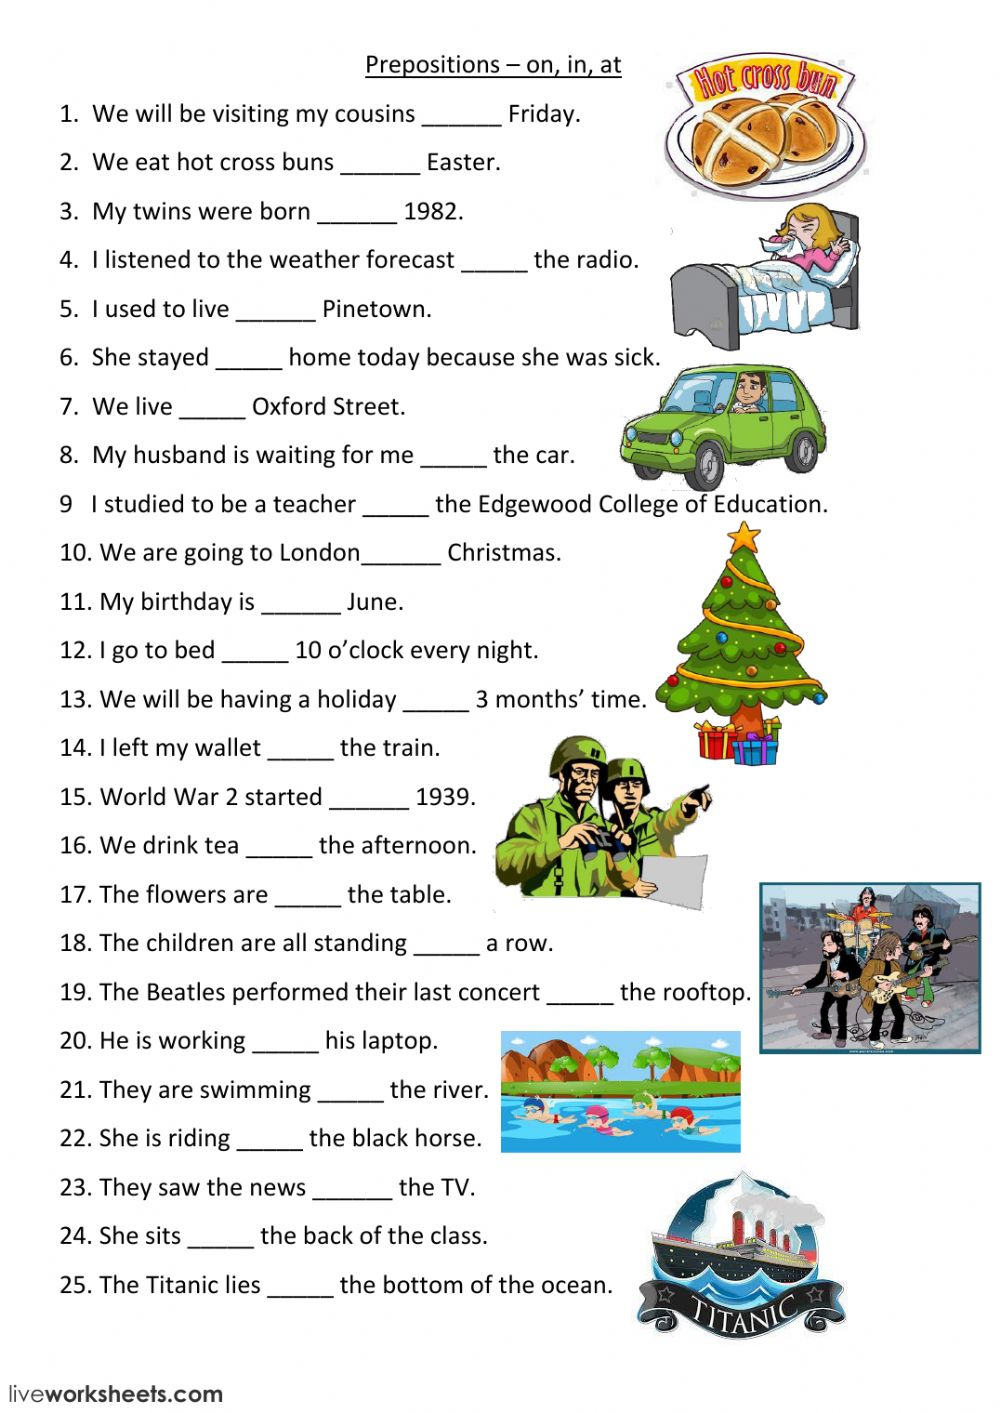 Preposition In Learn In Marathi All Complate: Prepositions Interactive Worksheet